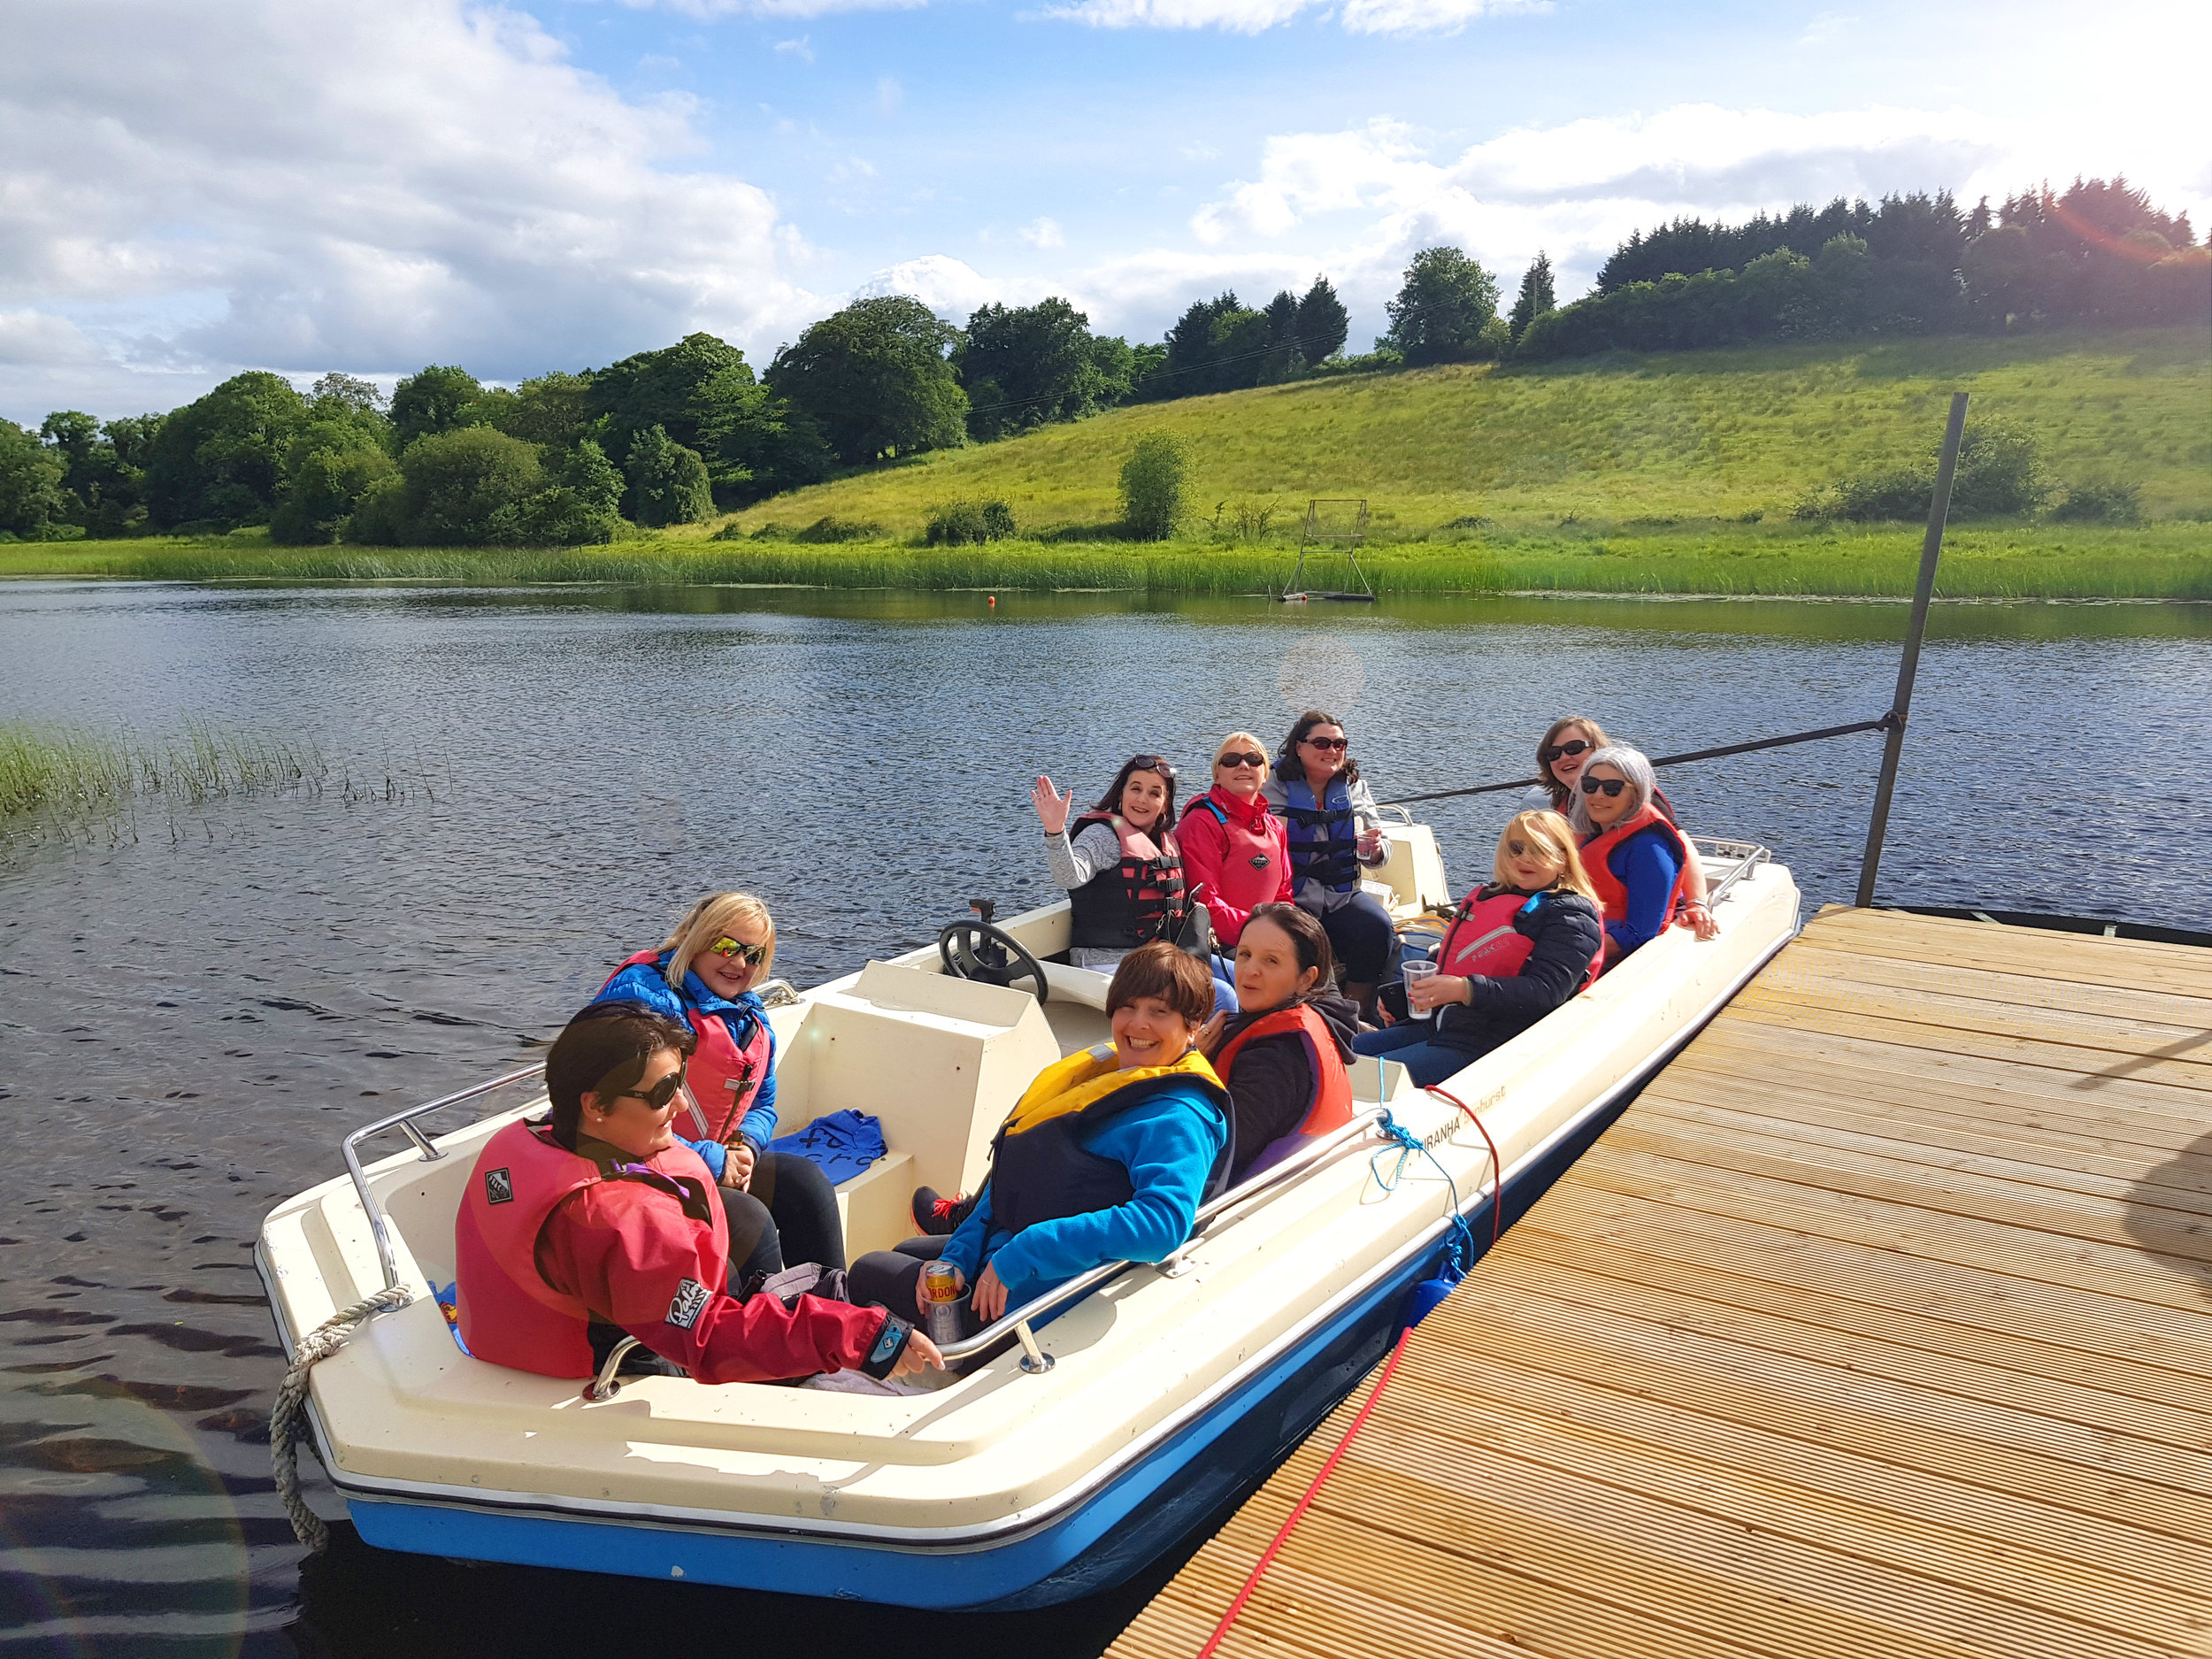 Guided Boat Tour - Take a guided motor boat tour to the famous 12th Century Clough Oughter Castle. This includes a historical account from an experienced local guide about the Castle and the surrounding area.PRICE: Please contact us for pricing